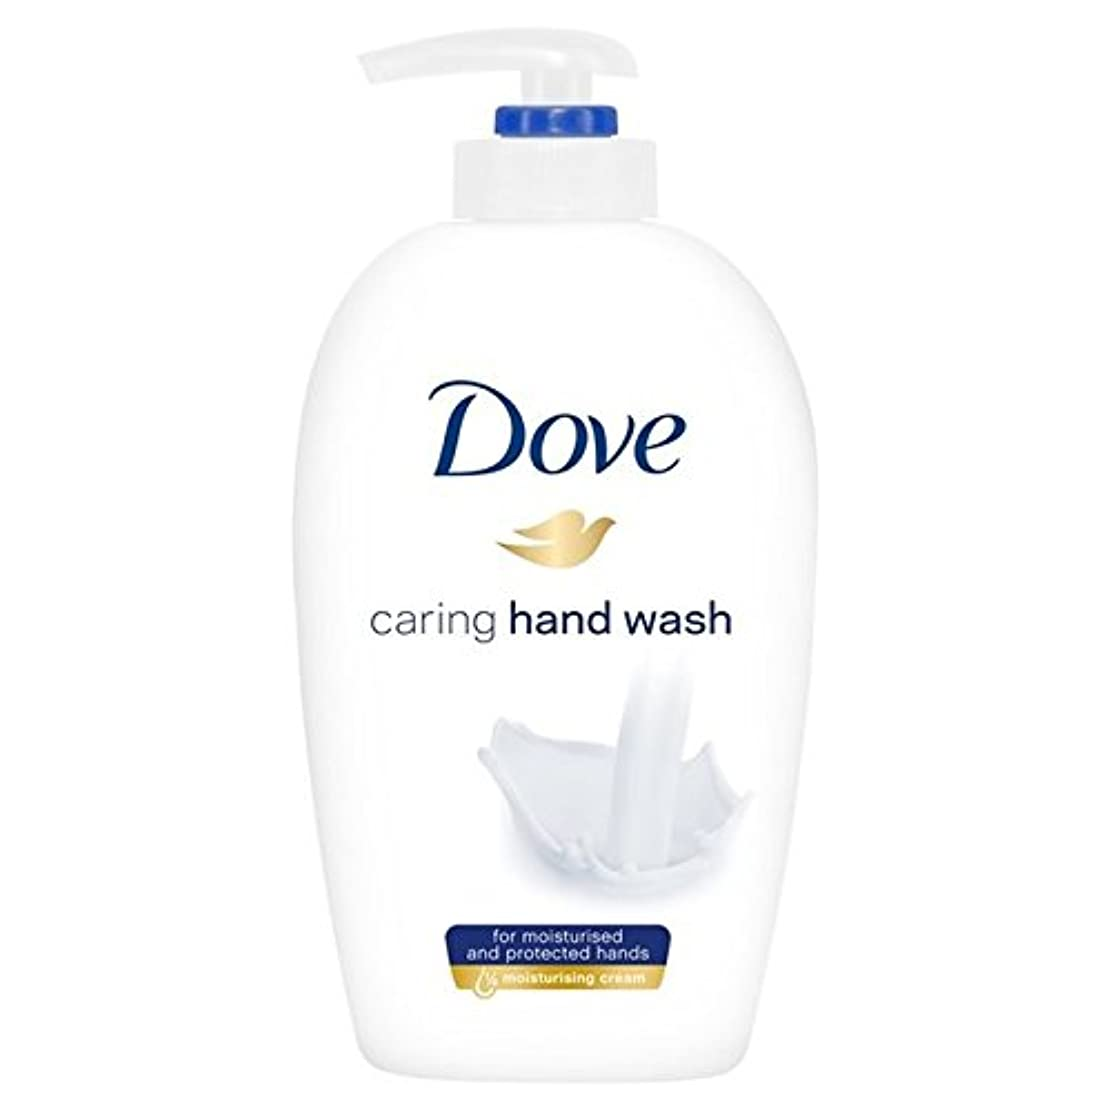 Dove Caring Hand Wash 250ml (Pack of 6) - 鳩思いやり手洗い250ミリリットル x6 [並行輸入品]